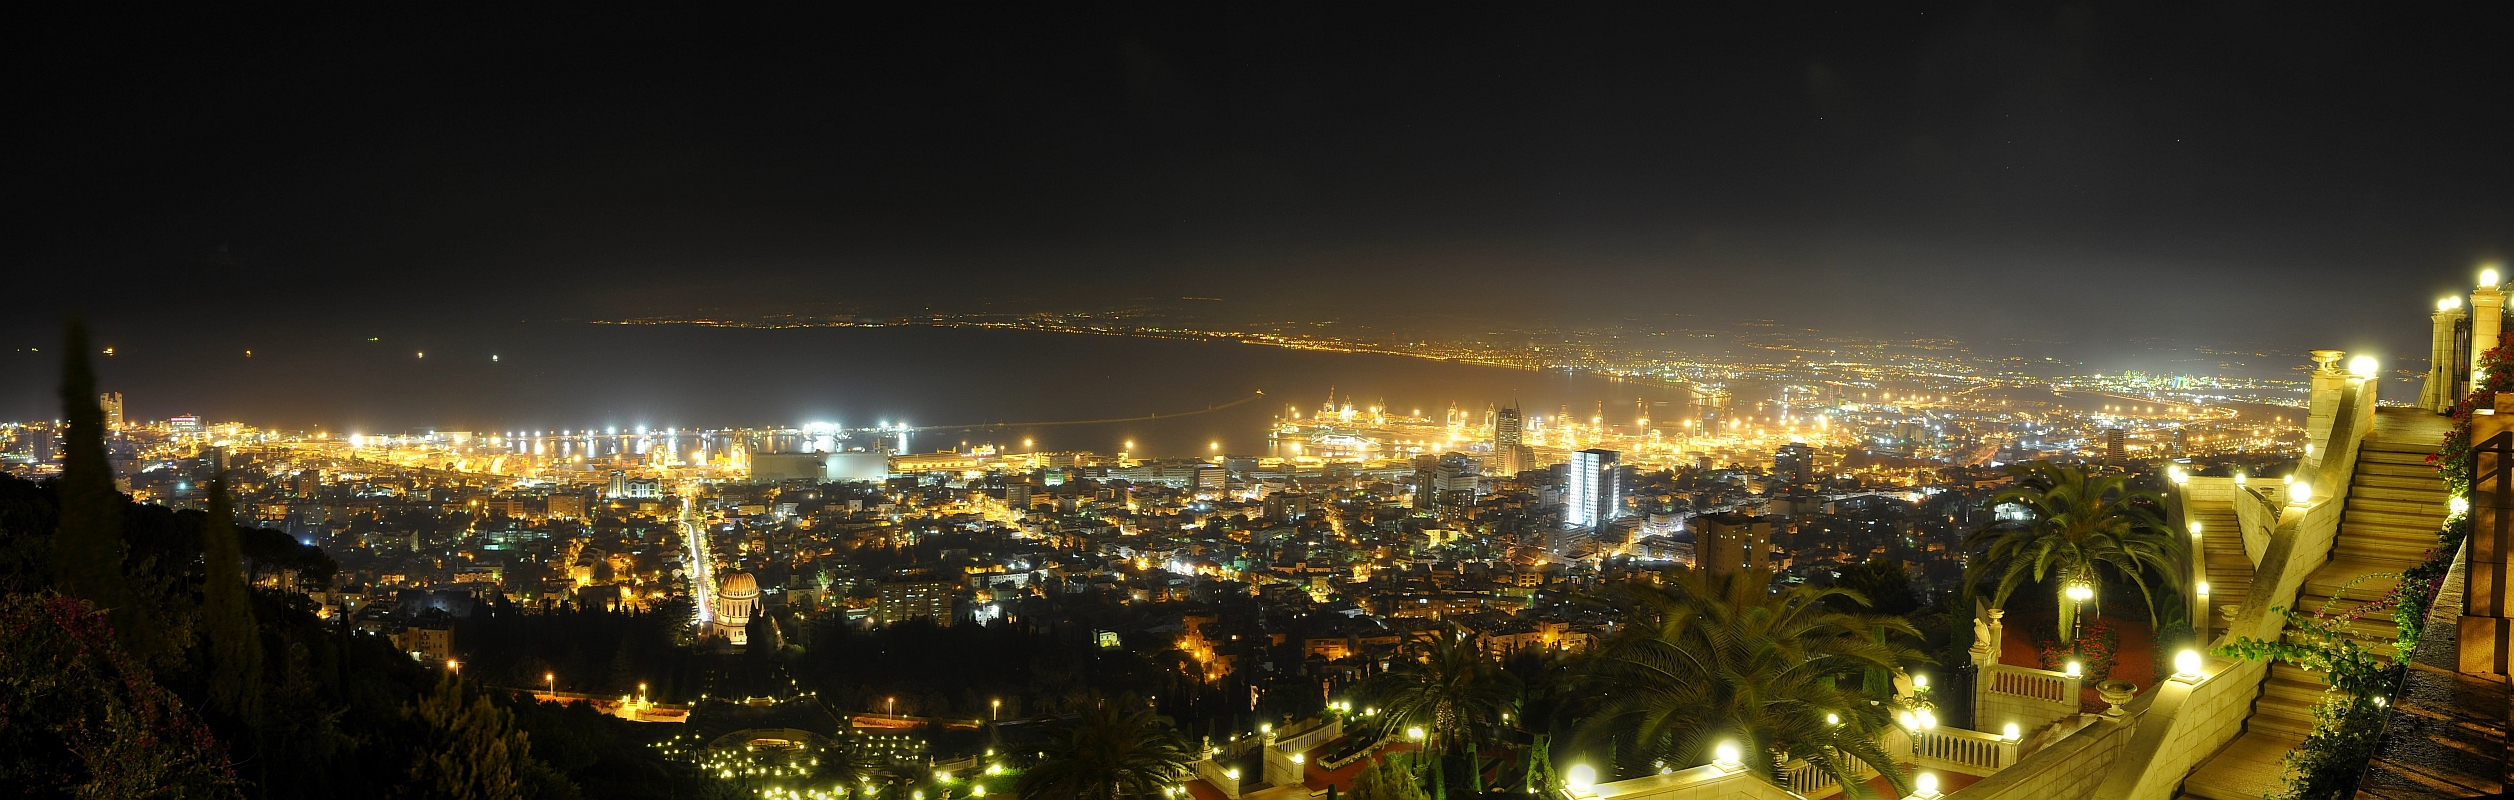 """Night lights of Haifa, Israel taken from Carmel looking down at the Bahá'í Shrine of the Báb (the round dome at left of the middle, and the steps in the near ground) and the Haifa port. Beyond is the Mediterranean Sea. This is a stitch of three photos. <a href=""""http://toplproject.wordpress.com/2008/10/28/a-couple-of-photos-from-haifa-israel/"""">Write up</a>."""